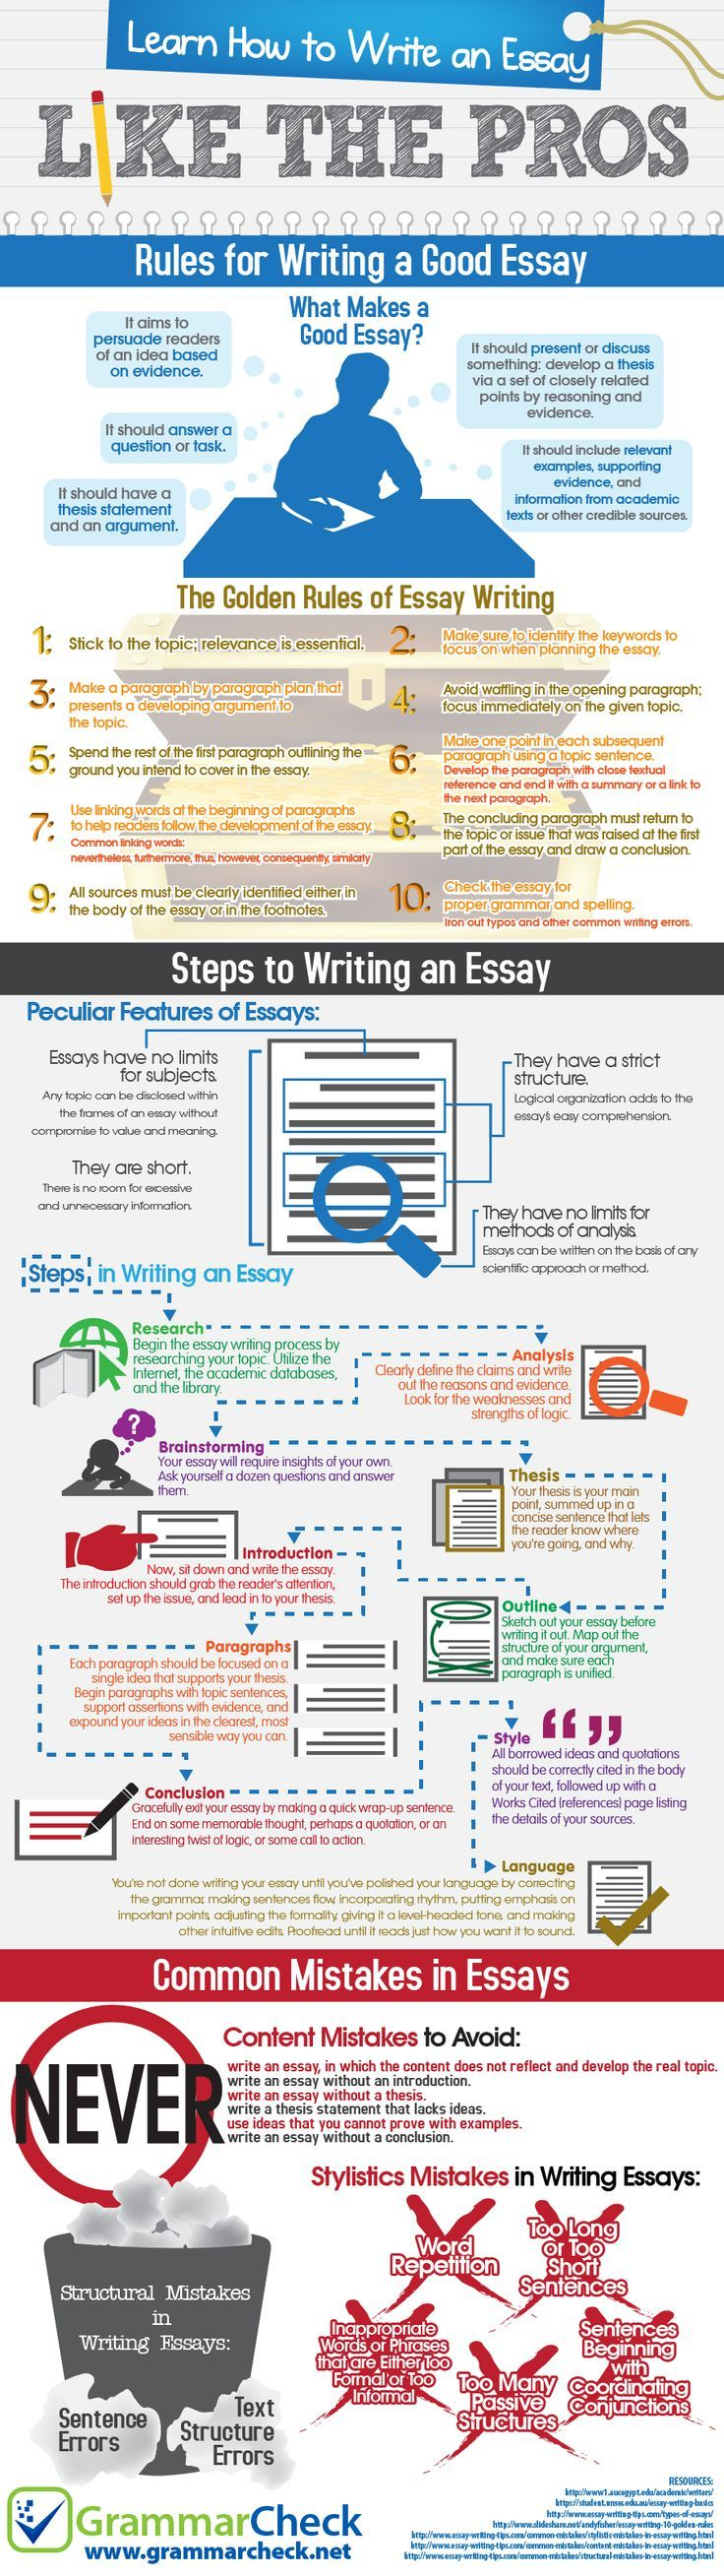 How to Write an Essay Like the Pros (Infographic) college student resources, college tips #college: